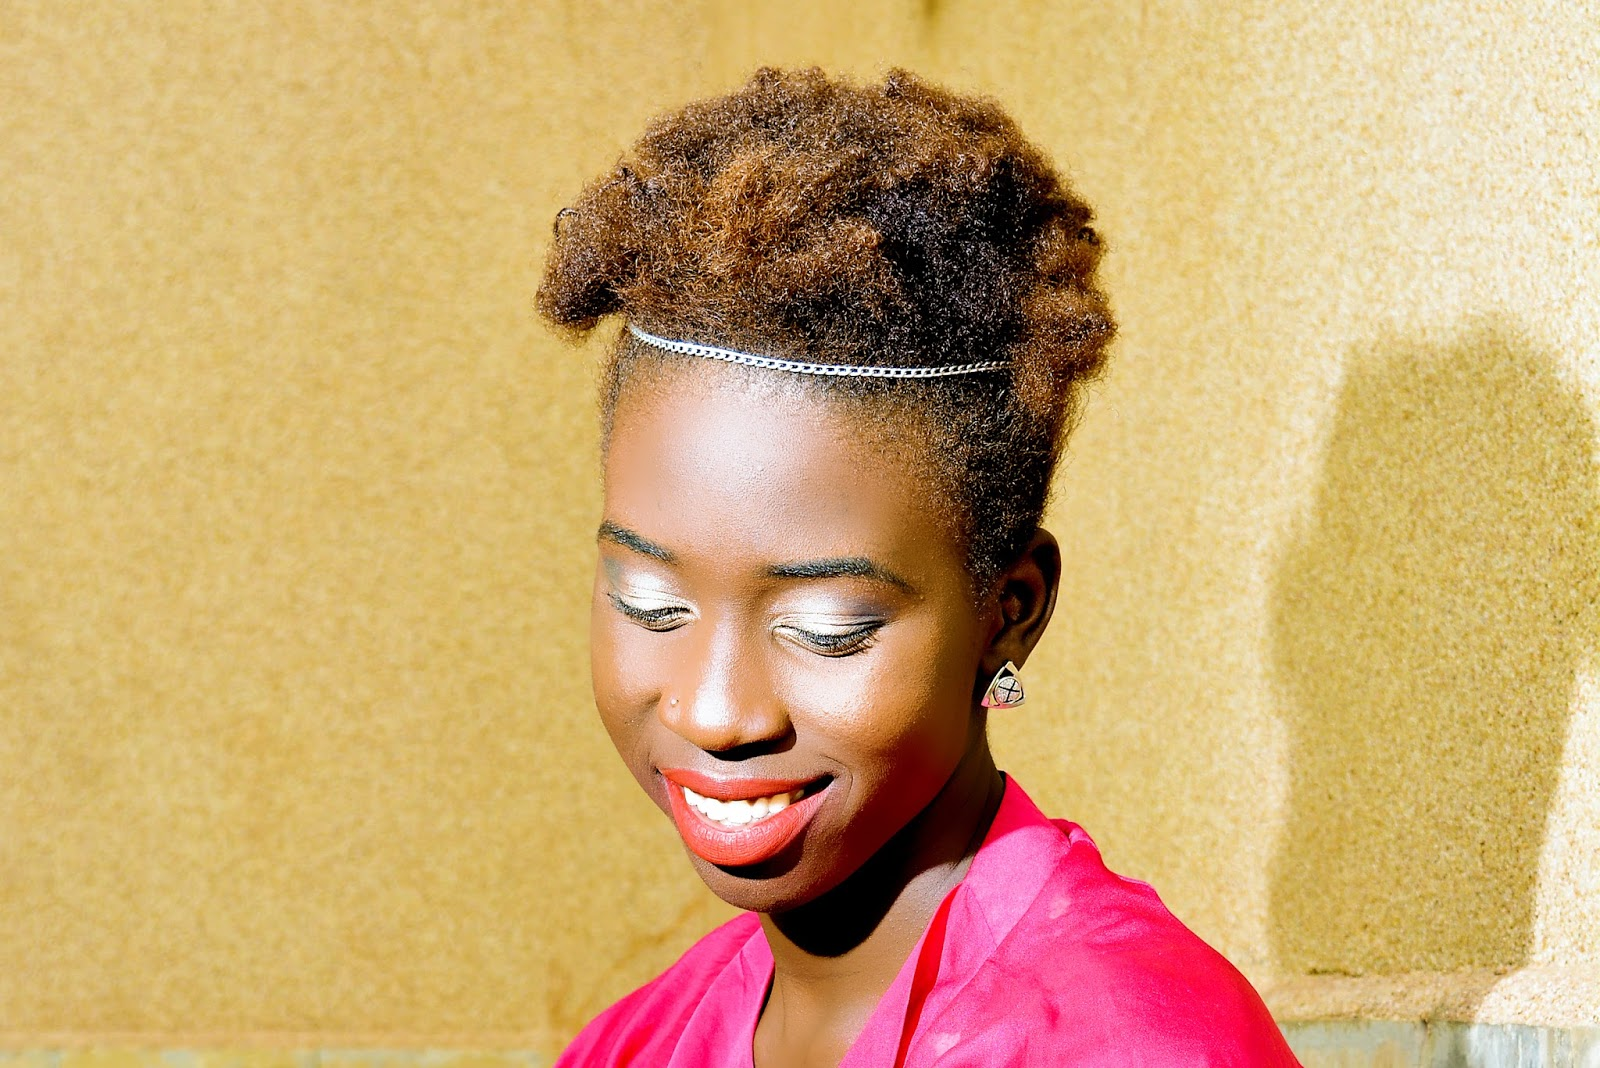 natural hair, type 4c hair, kinky hair, how to take care of natural hair, dyed natural hair, bad hair habits, natural hair do's, natural hair dont's, kenyan fashion blogger, african fashion blogger, fashion blogger kenya